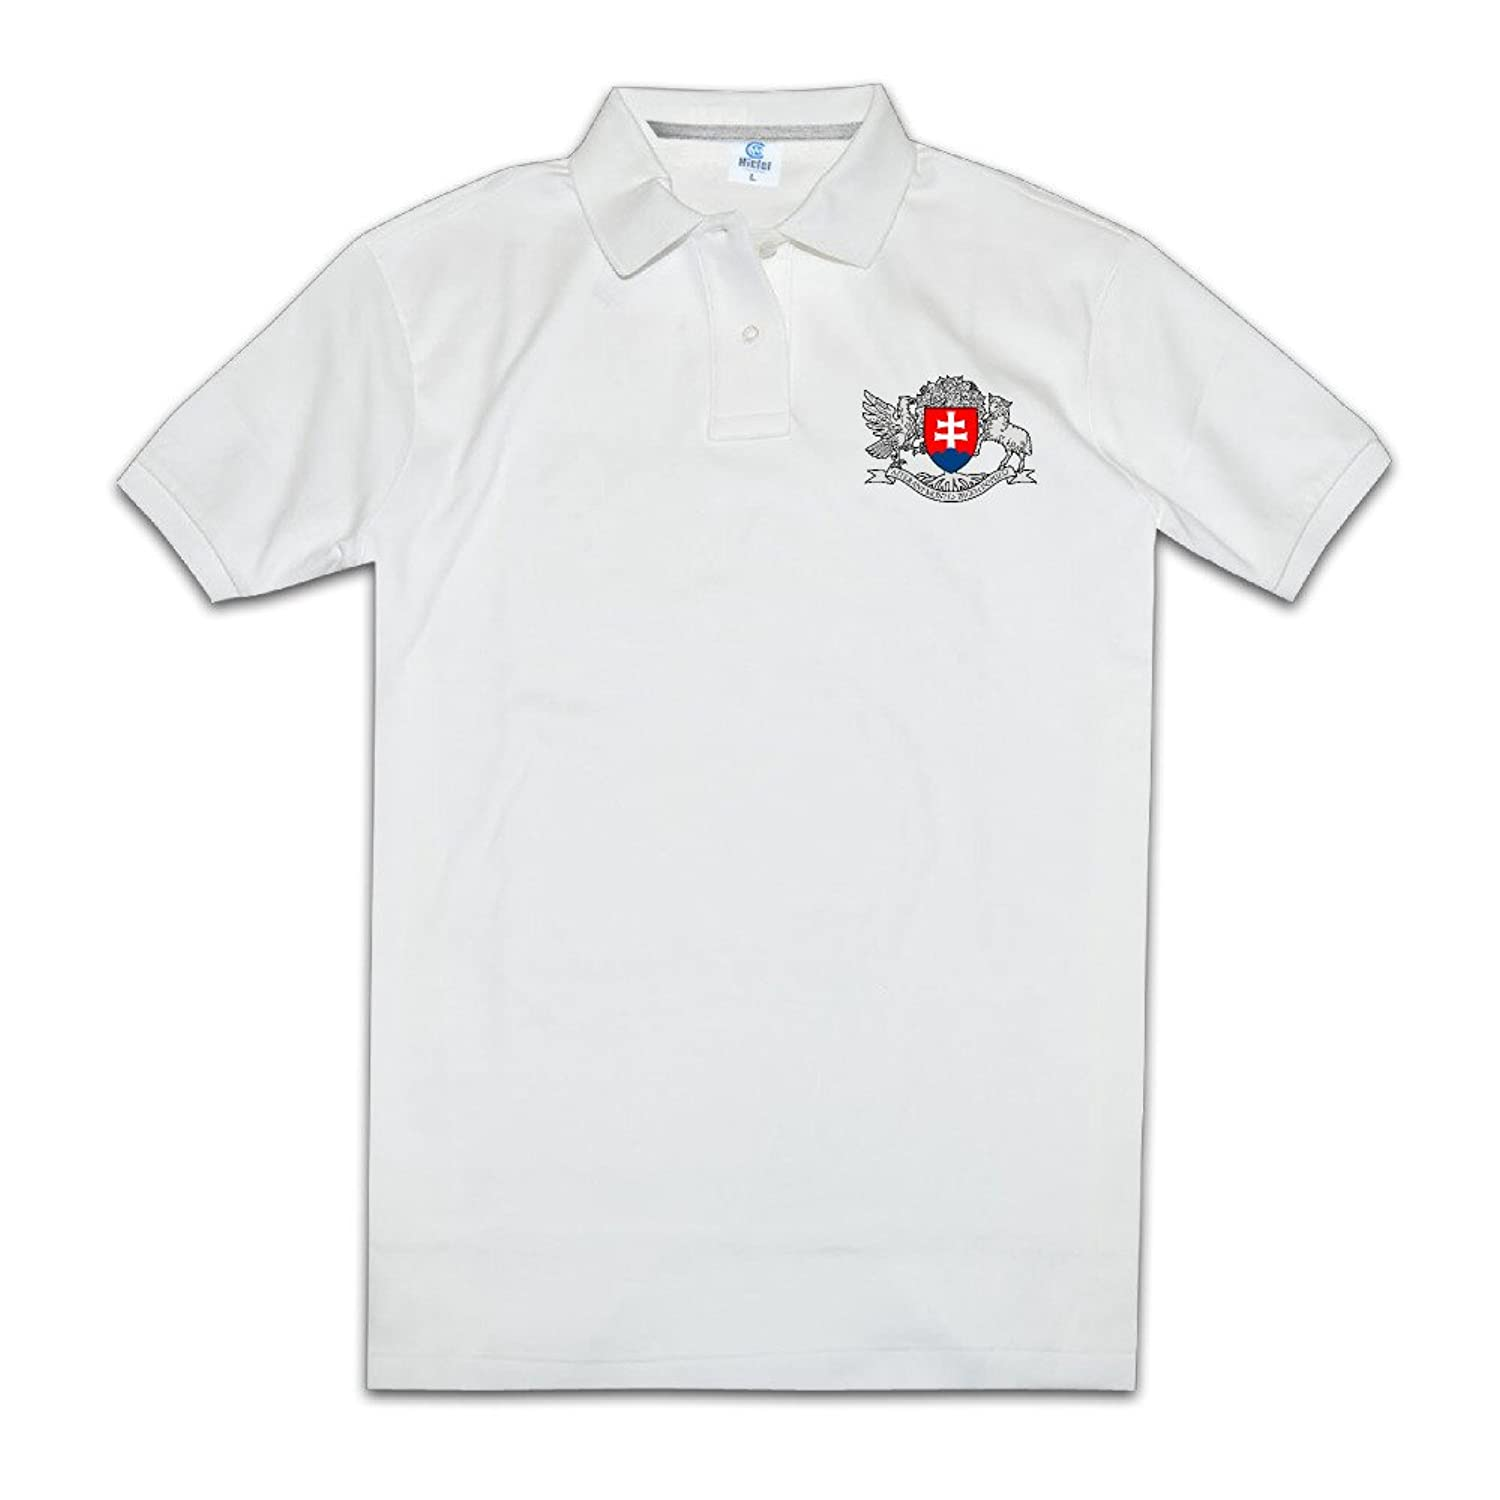 Men's Summer Blank 2016 The Honorary Consulate Of The Slovak Republic Polo Tees Size XL Color White